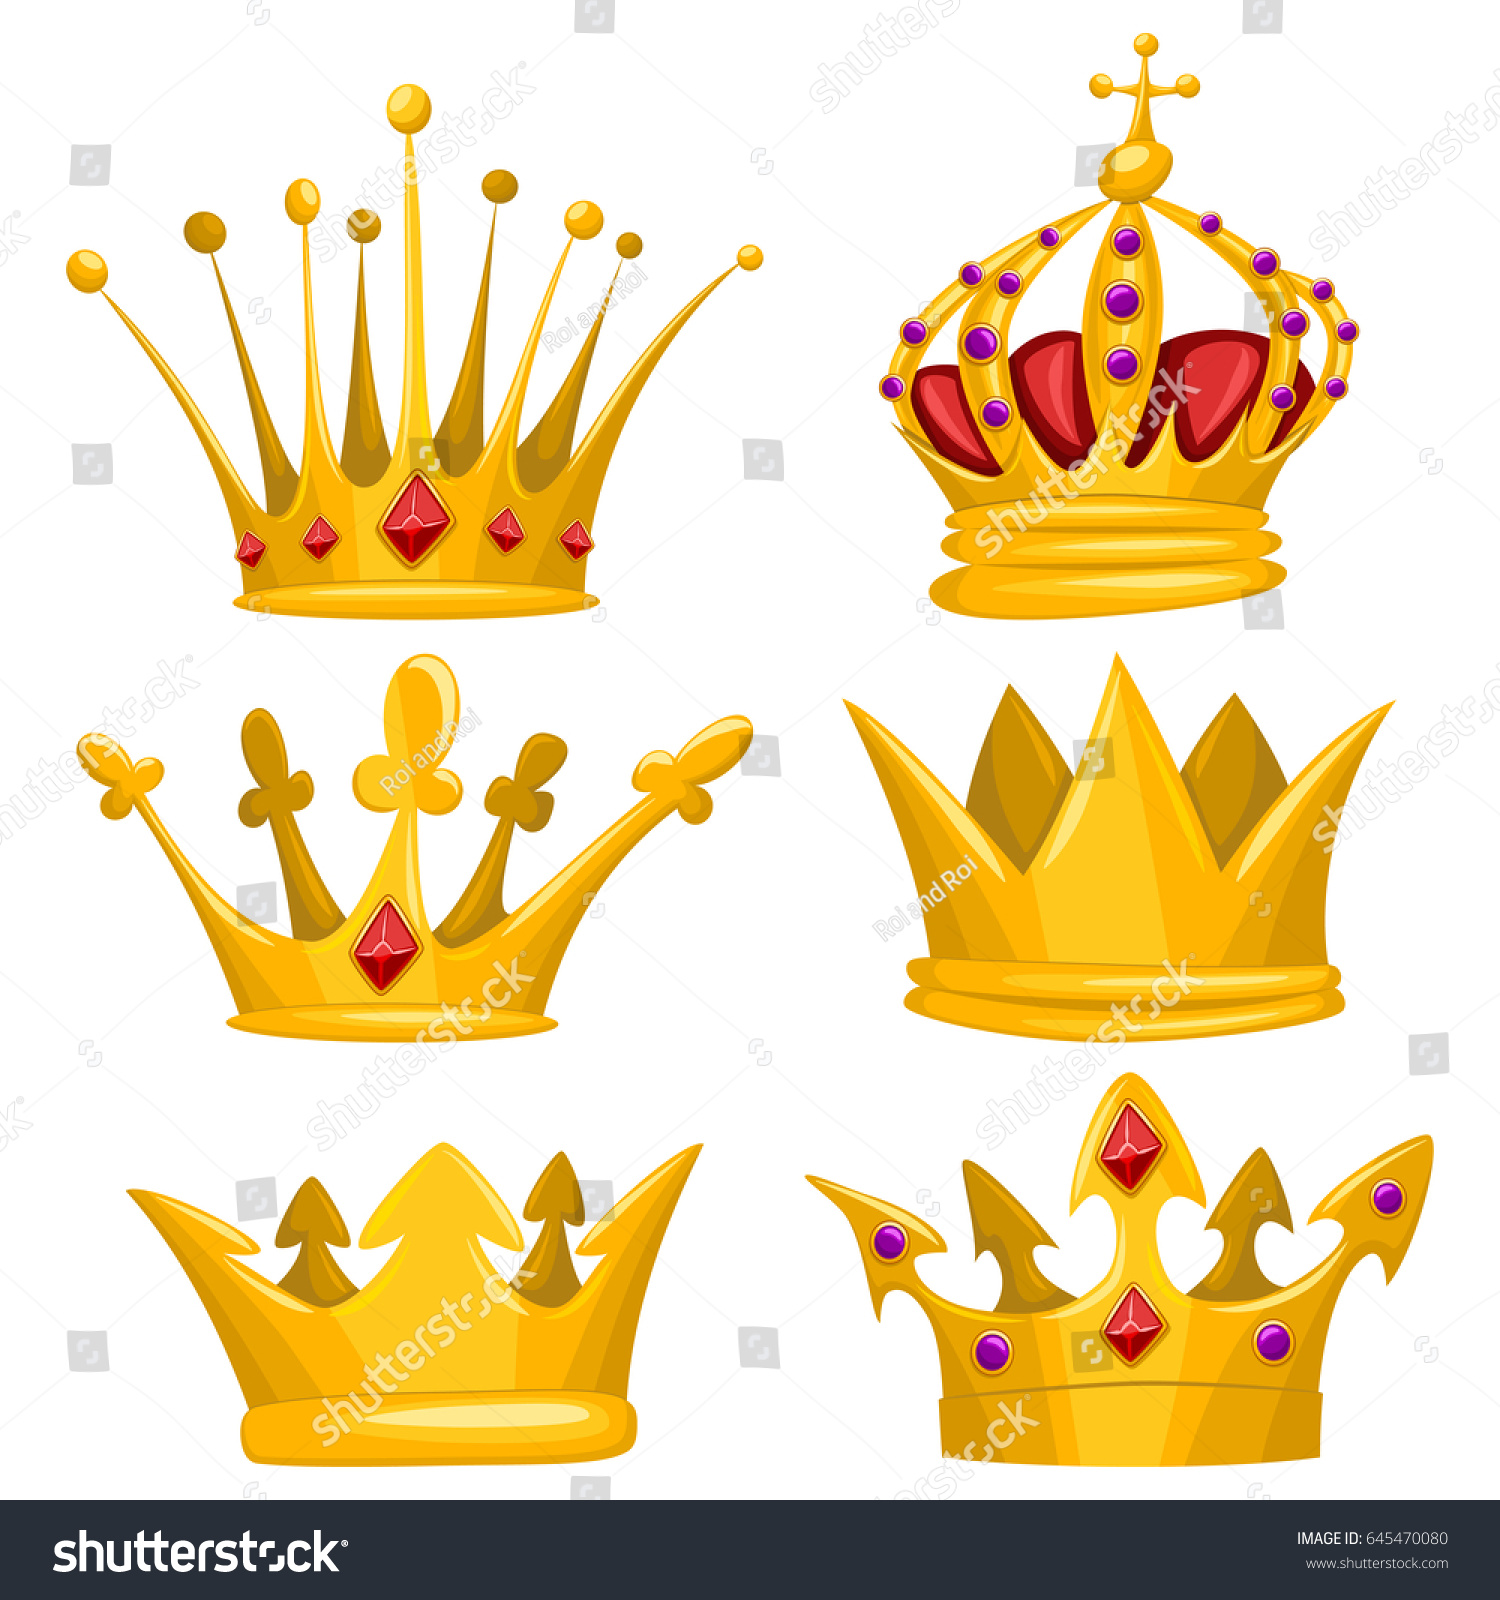 Gold Crown King Queen Princess Prince Stock Vector Royalty Free